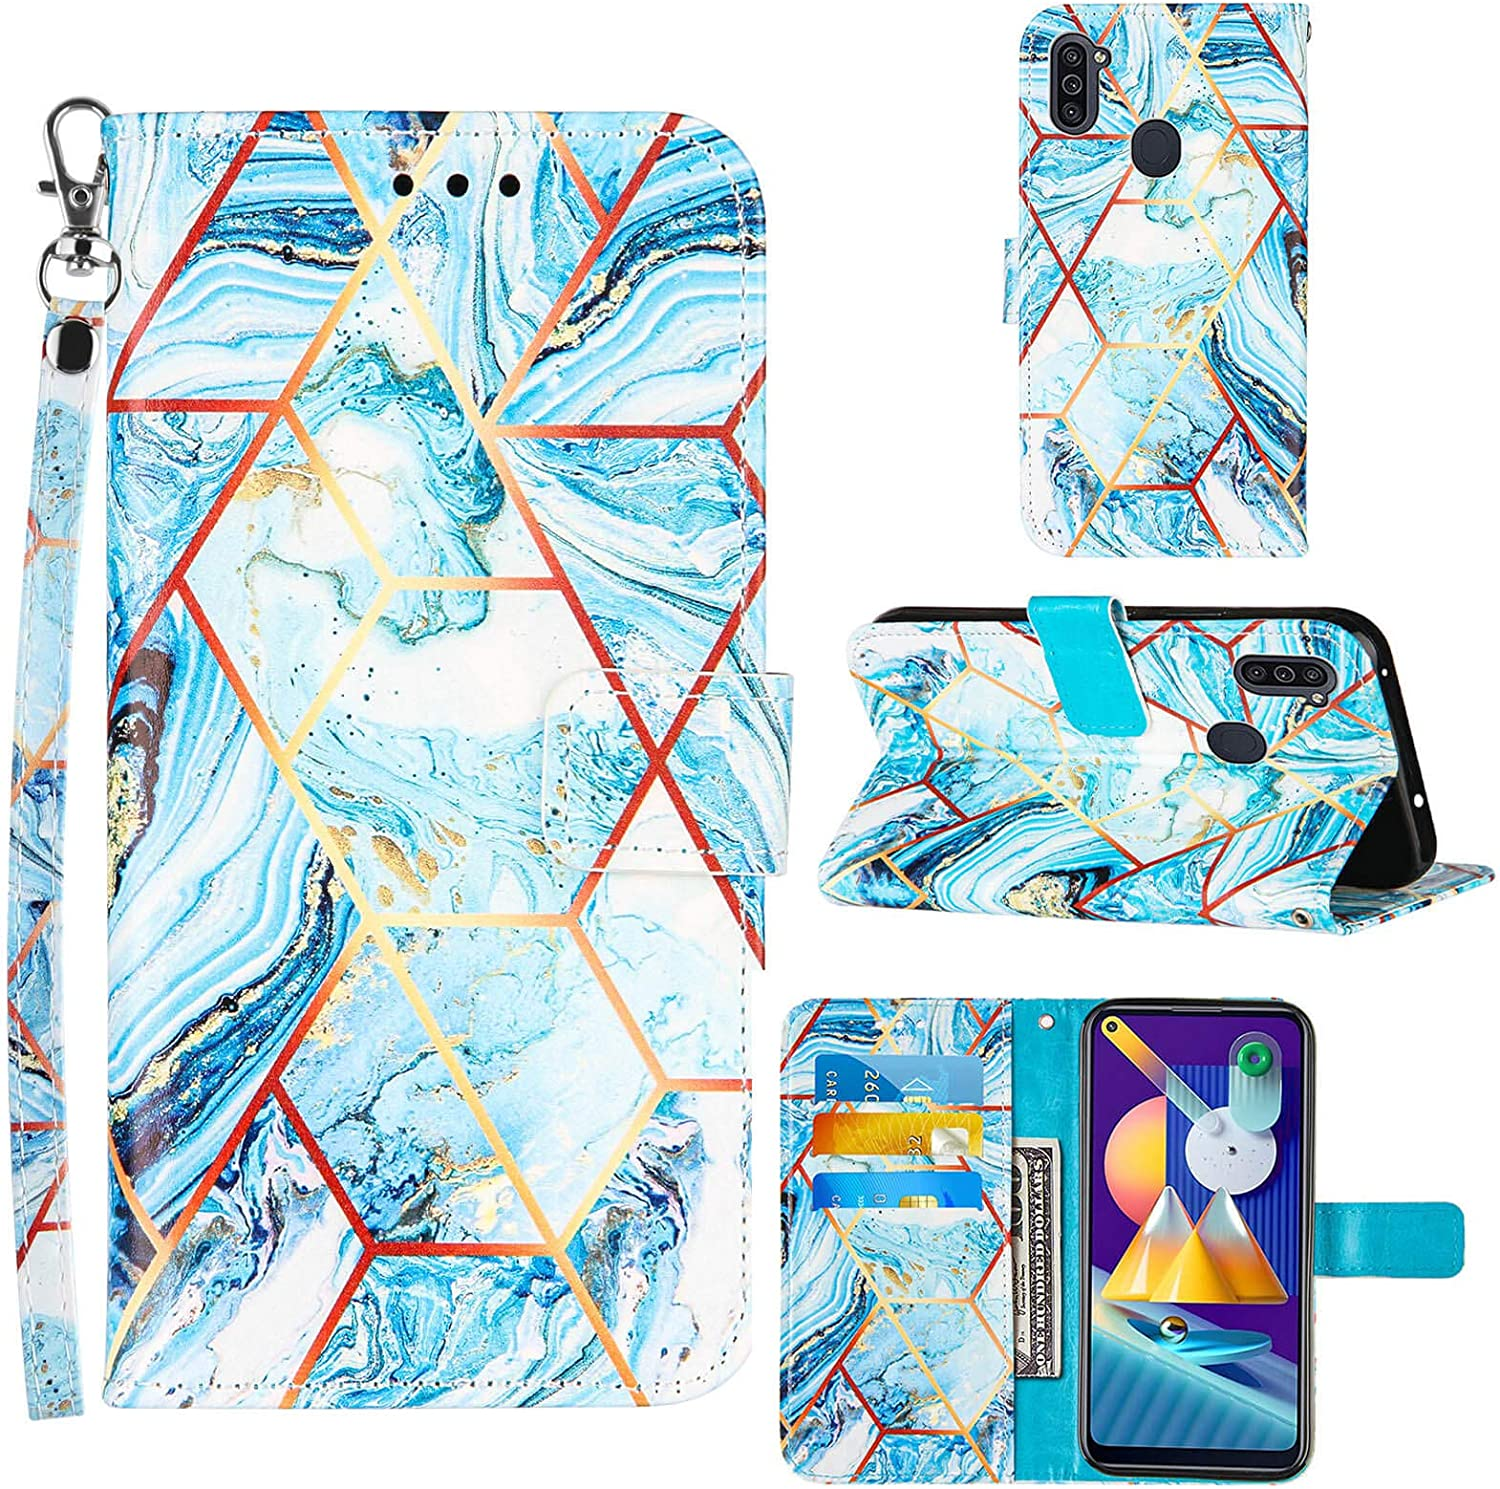 A11 Phone Case Wallet,for Galaxy A11 Case,[Stand Feature][Wrist Strap][Credit Cards Holder] 2021 Marble Pattern Premium PU Leather Flip Protective Cover for Samsung A11 Case (Blue)